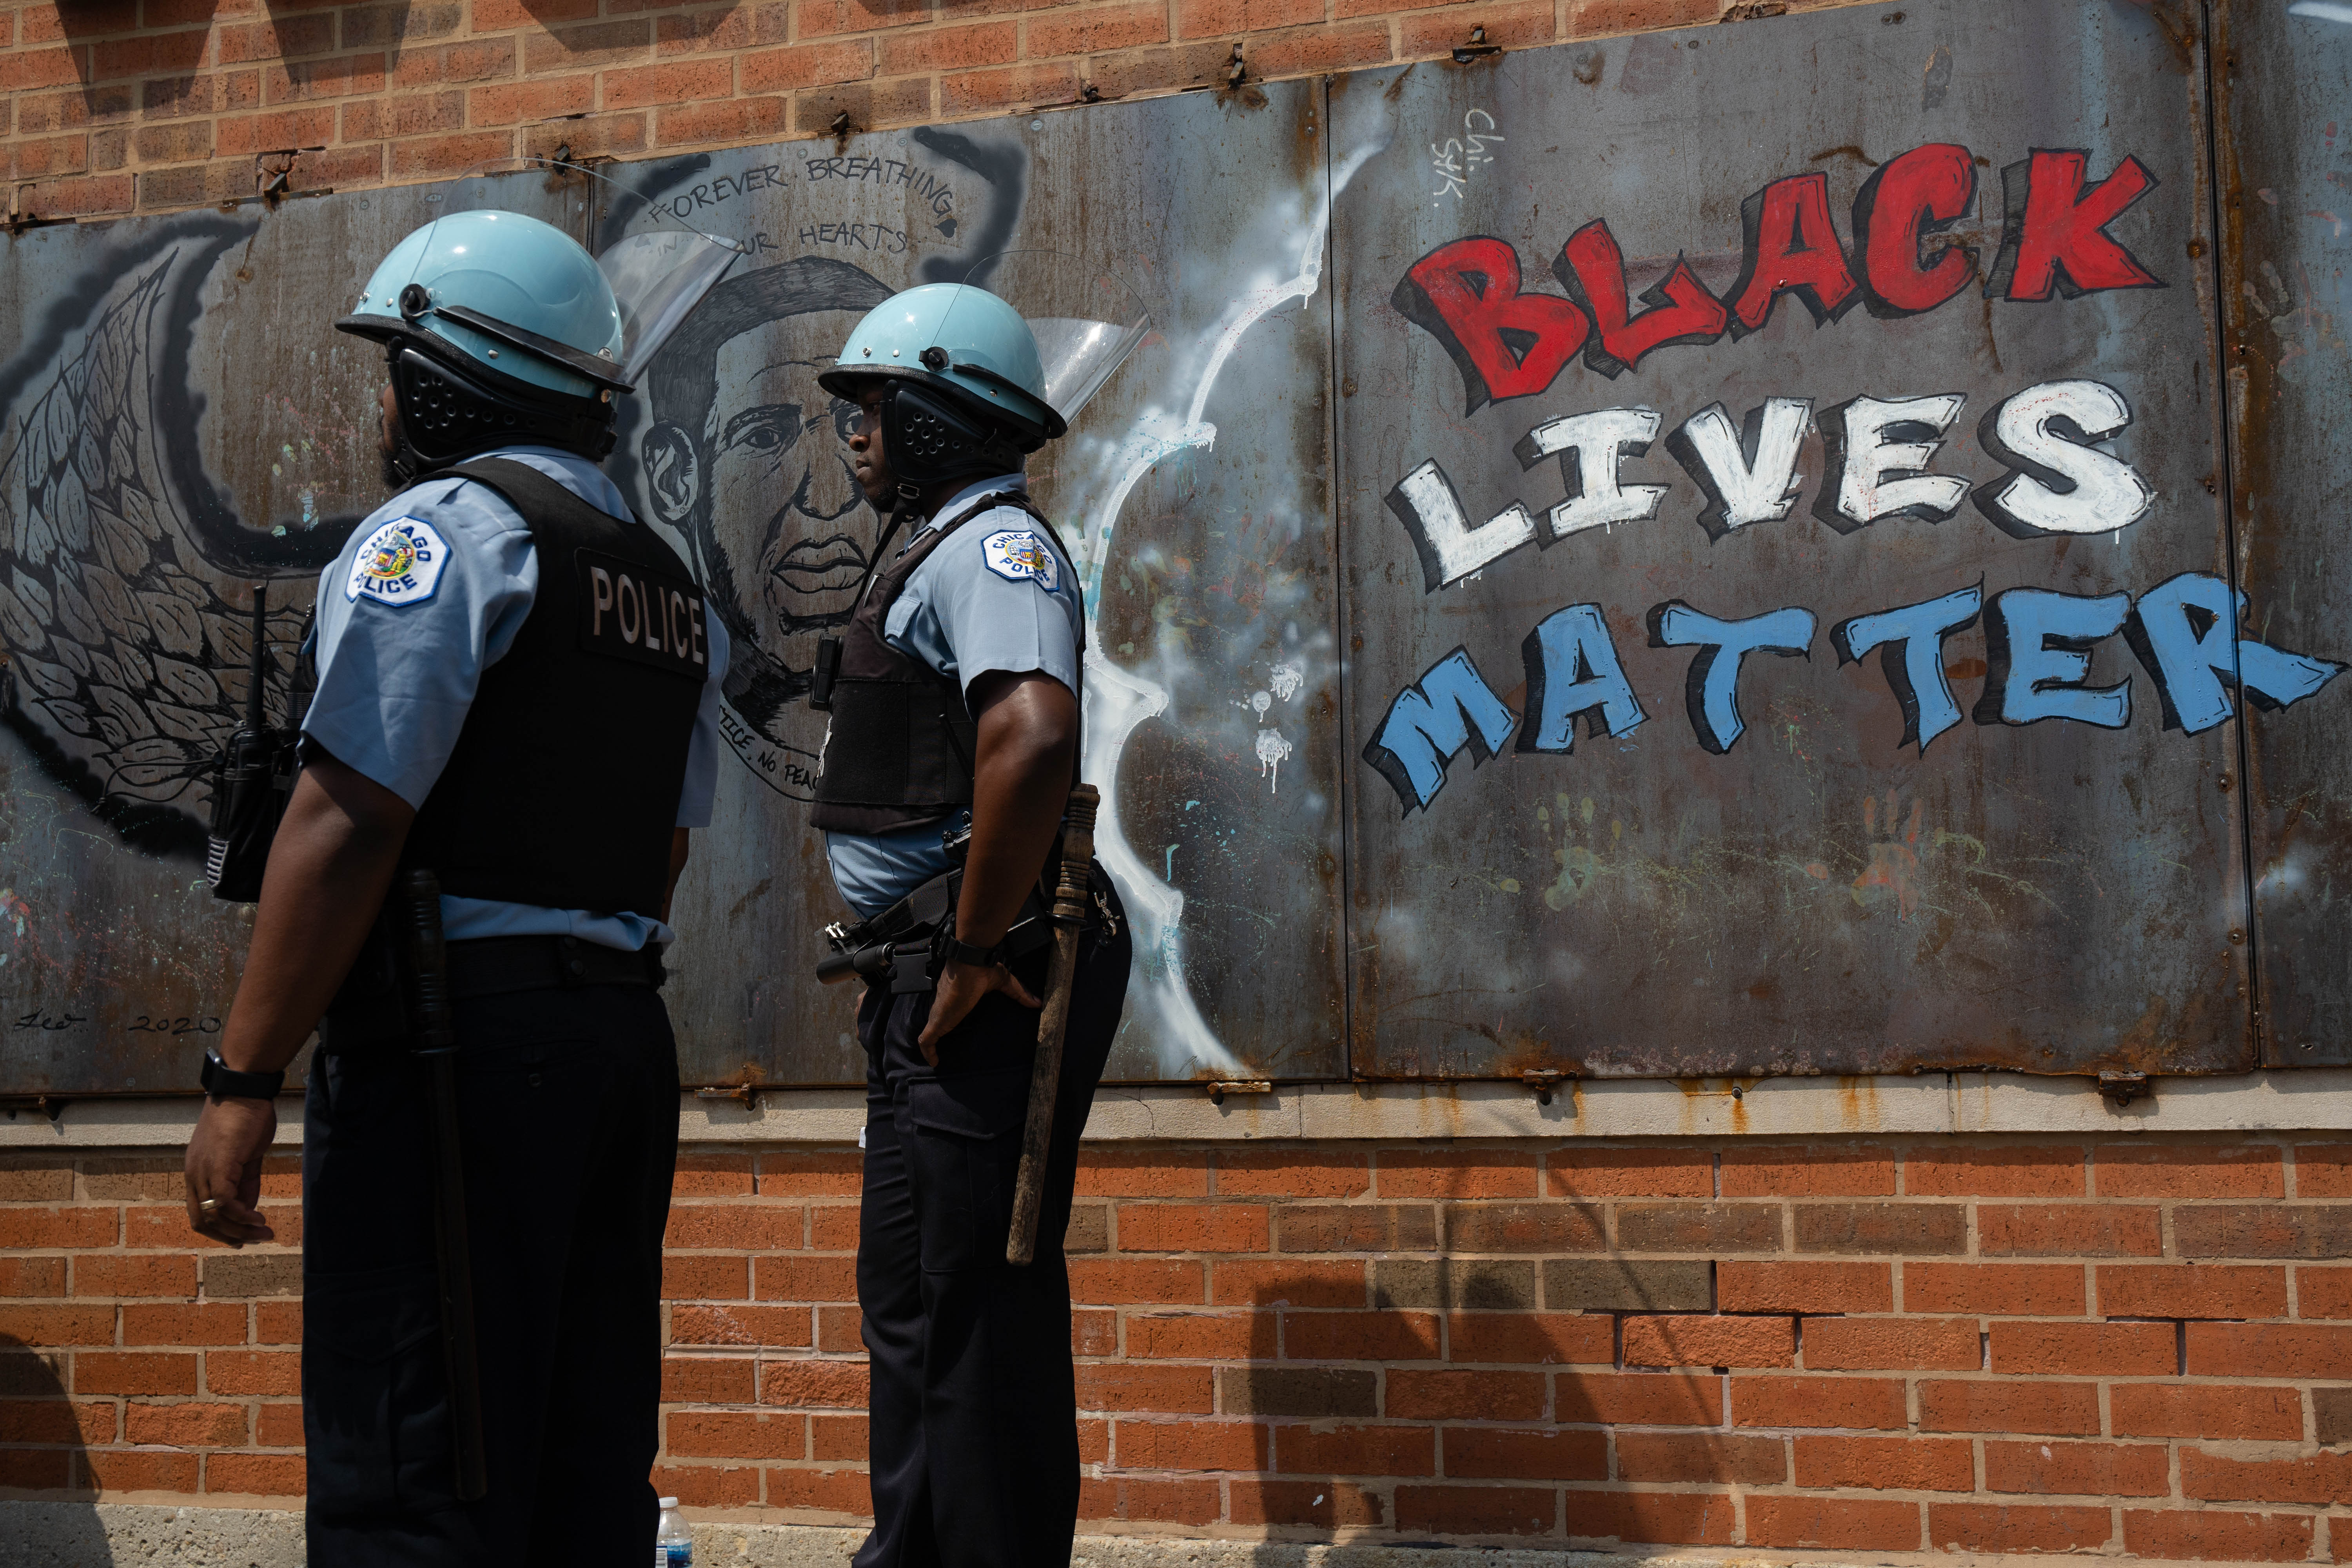 Police officers stand beside a mural for George Floyd in Bronzeville during an anti-police brutality protest Saturday afternoon, Aug. 15, 2020.